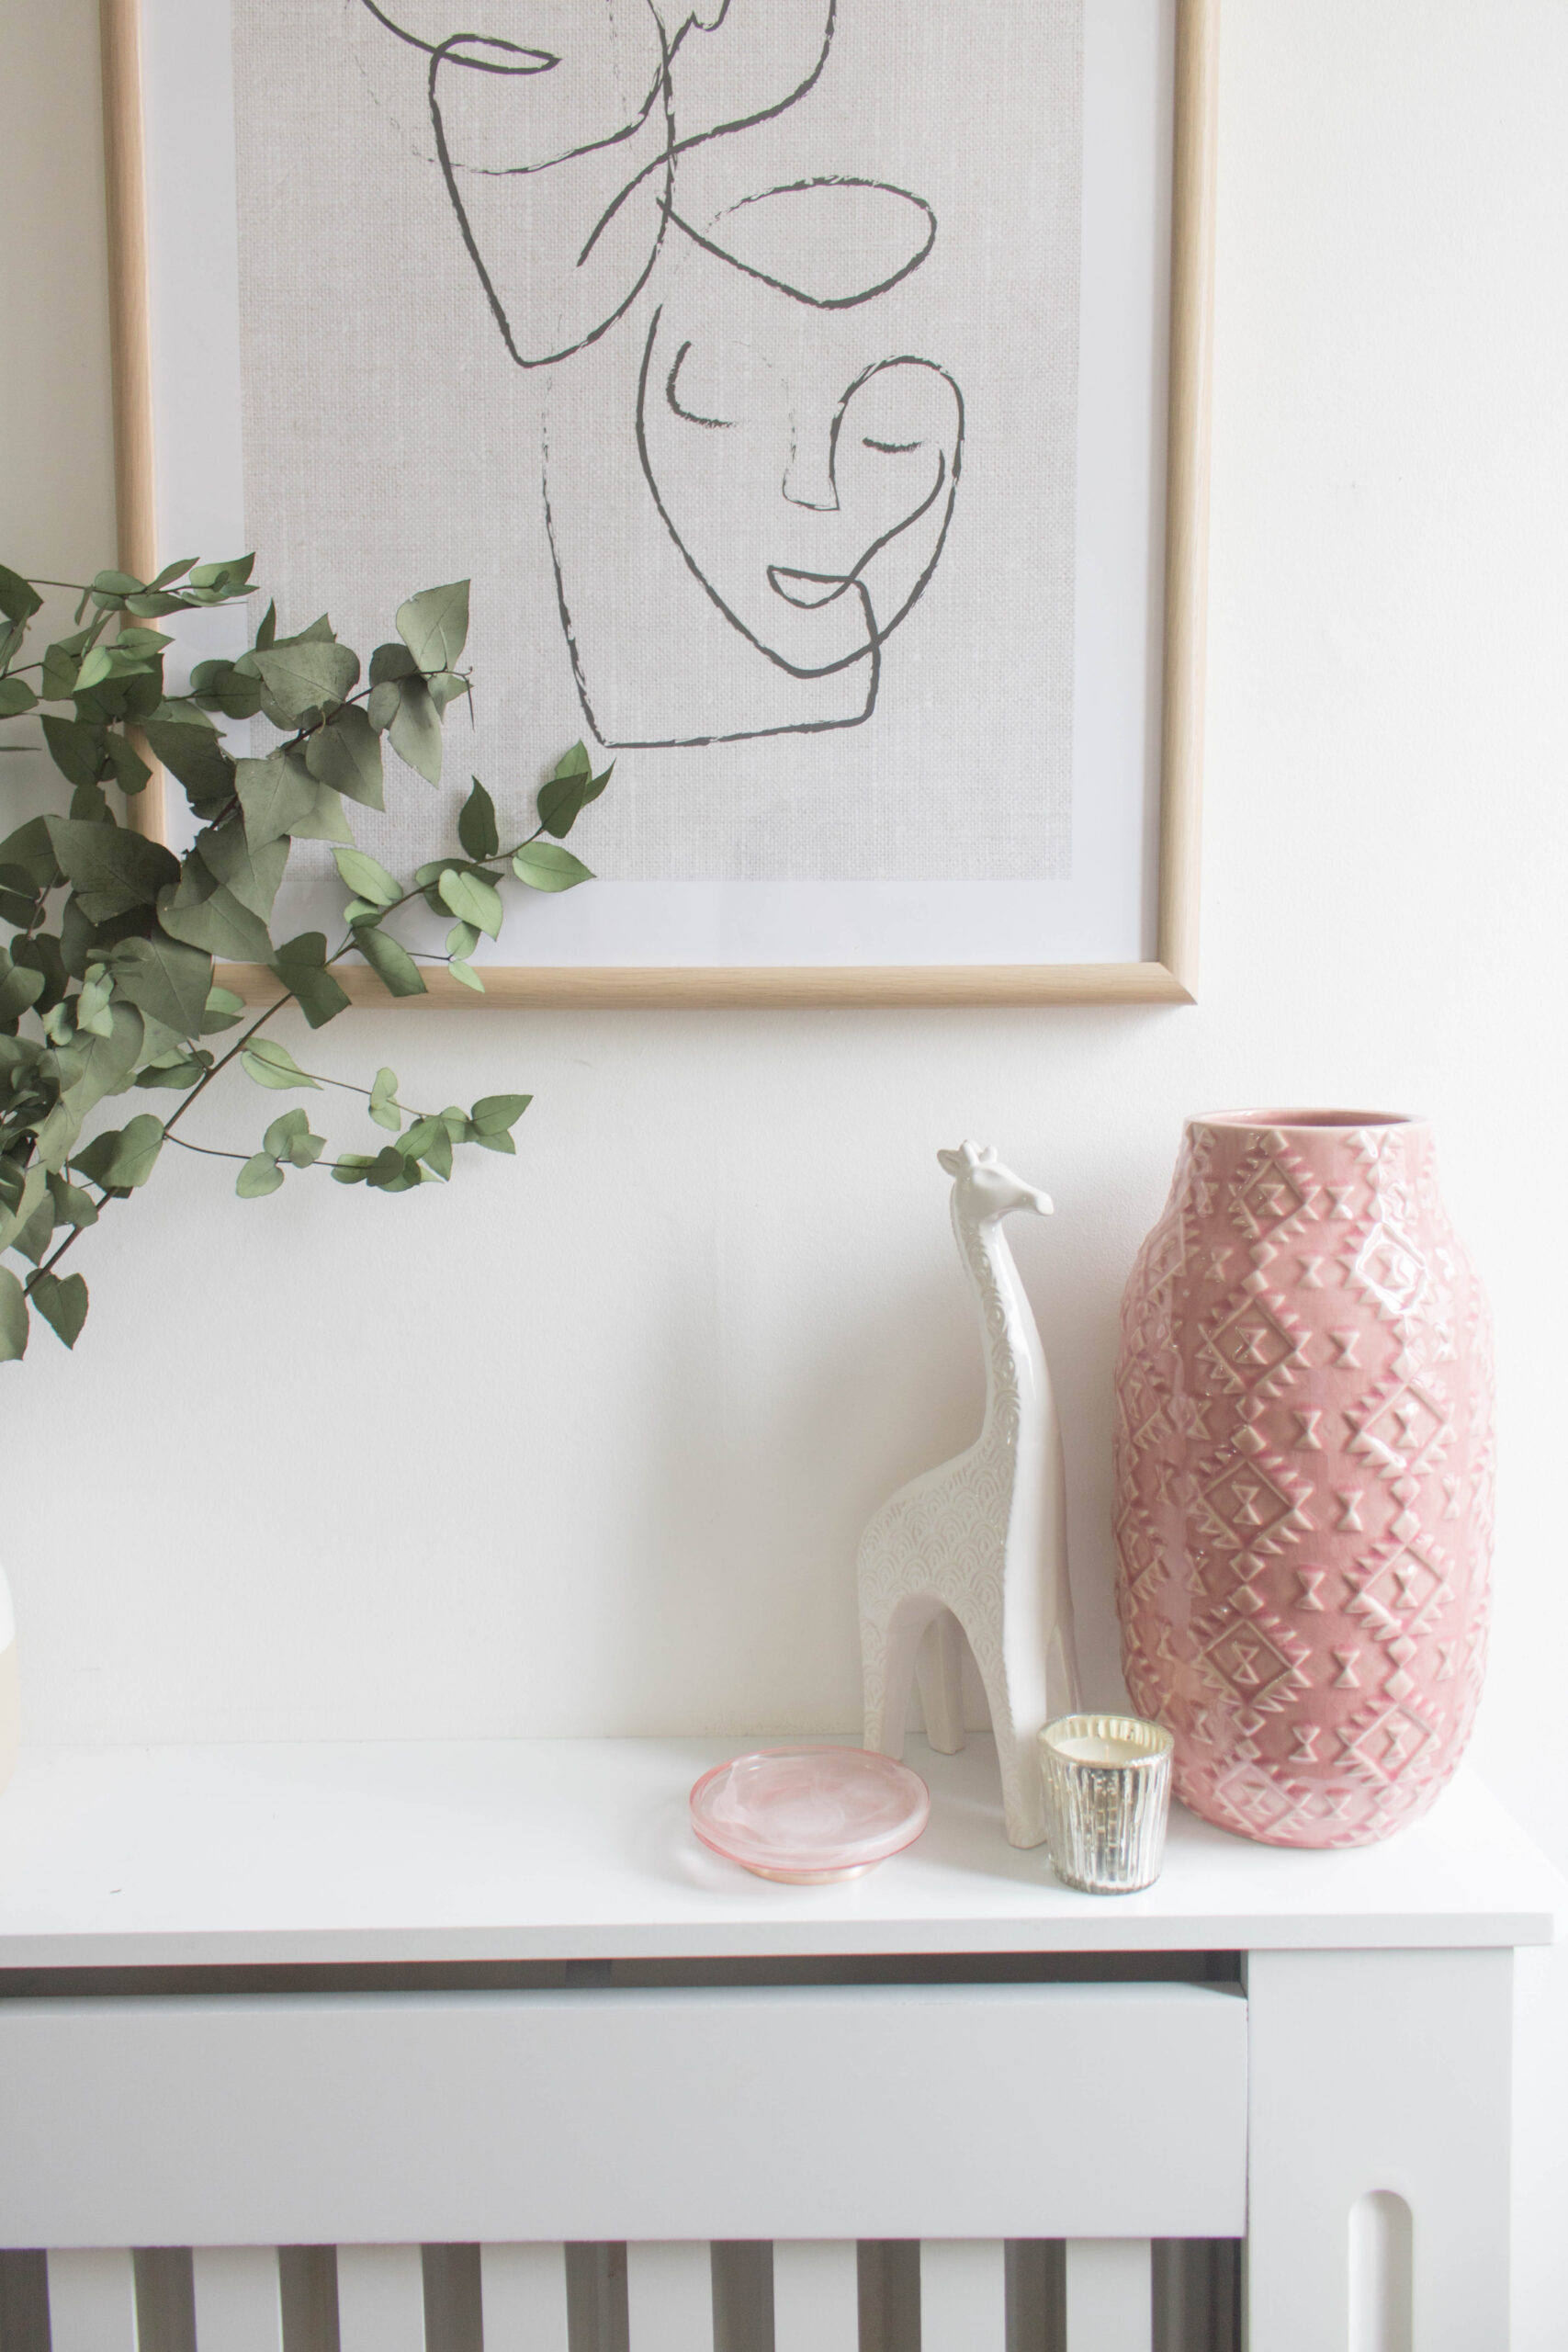 My Favourite Small Decor Accents In My Home